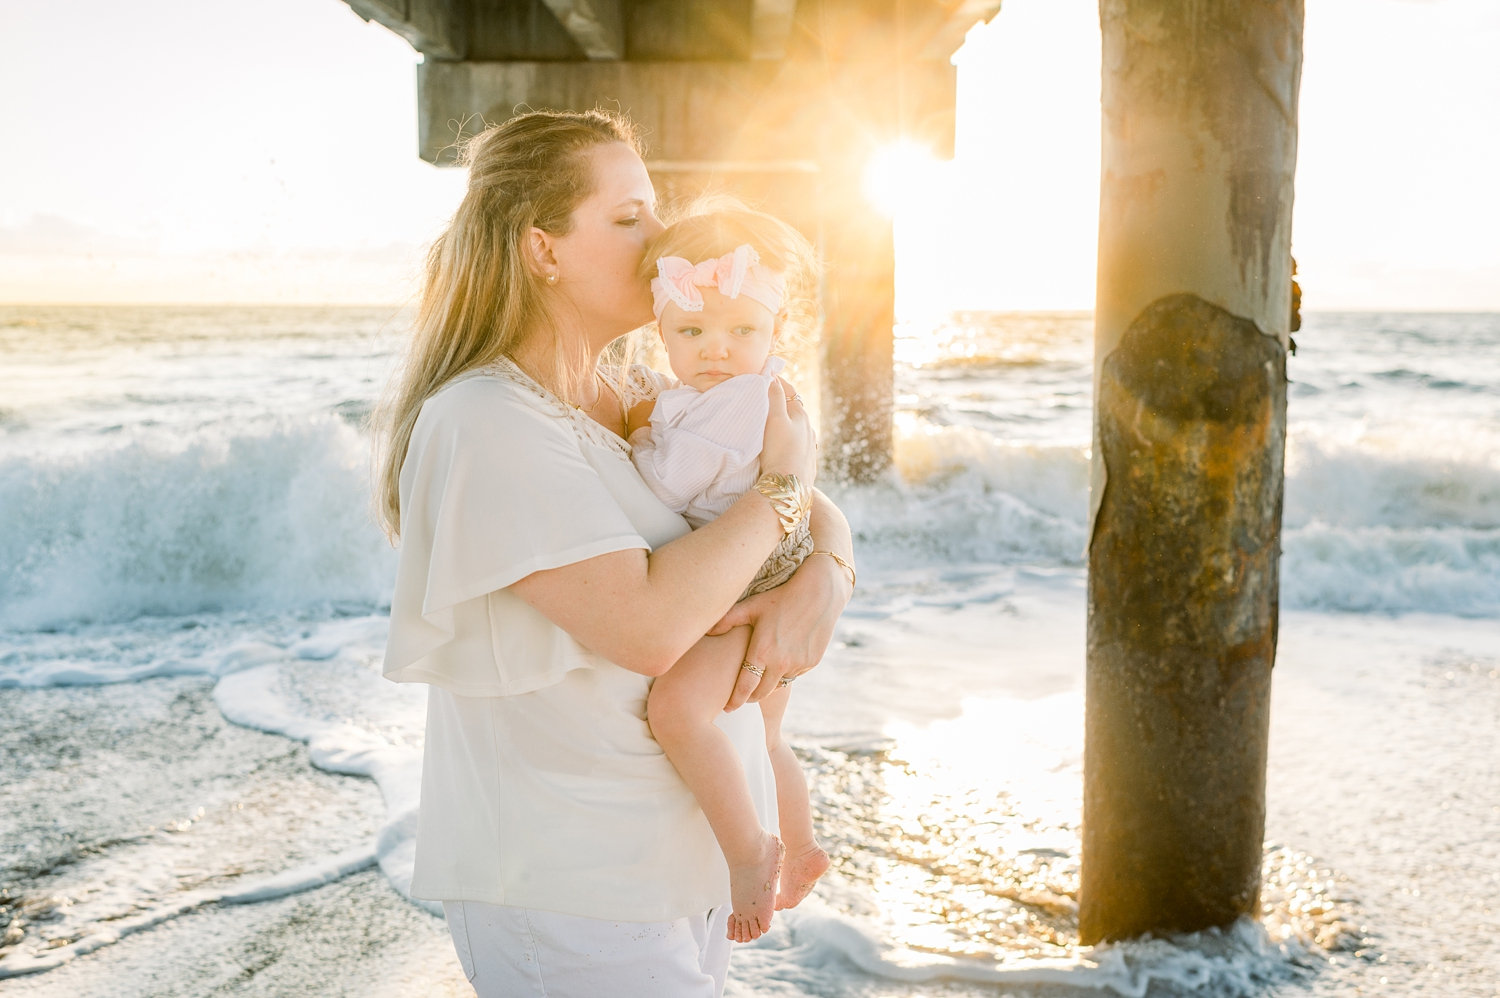 mother kissing baby girl, beach pier, sunrise beach session, Rya Duncklee